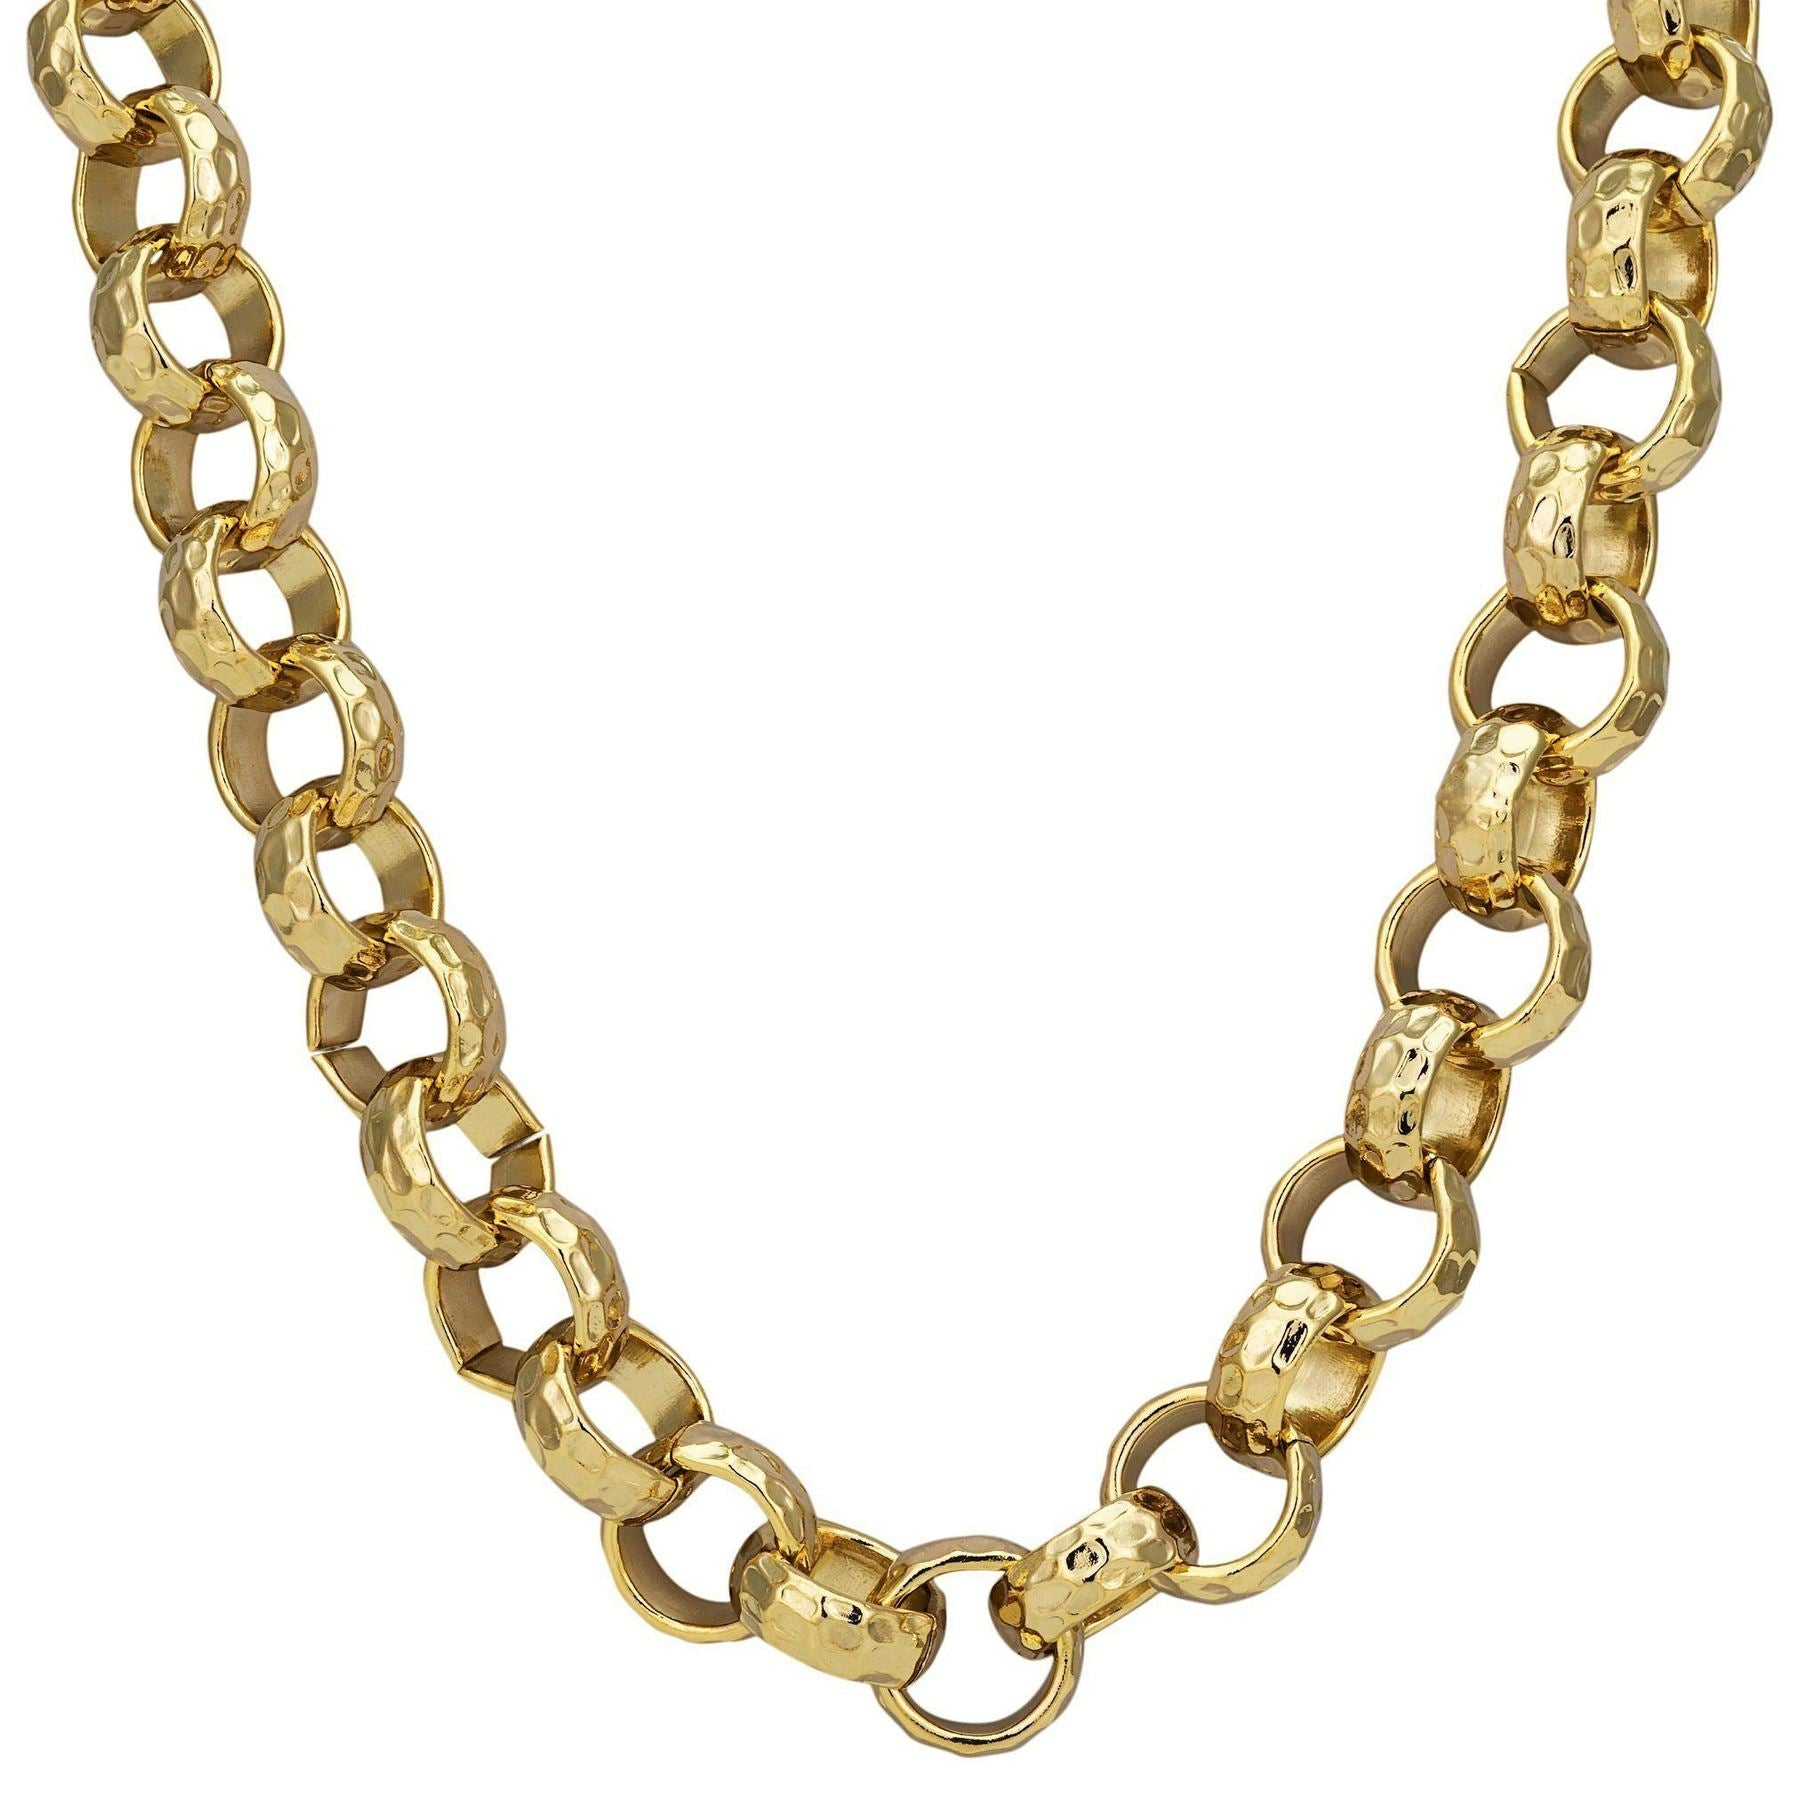 12mm Gold Diamond Cut Pattern Belcher Chain-Chains-Bling King-24 inch-Bling King